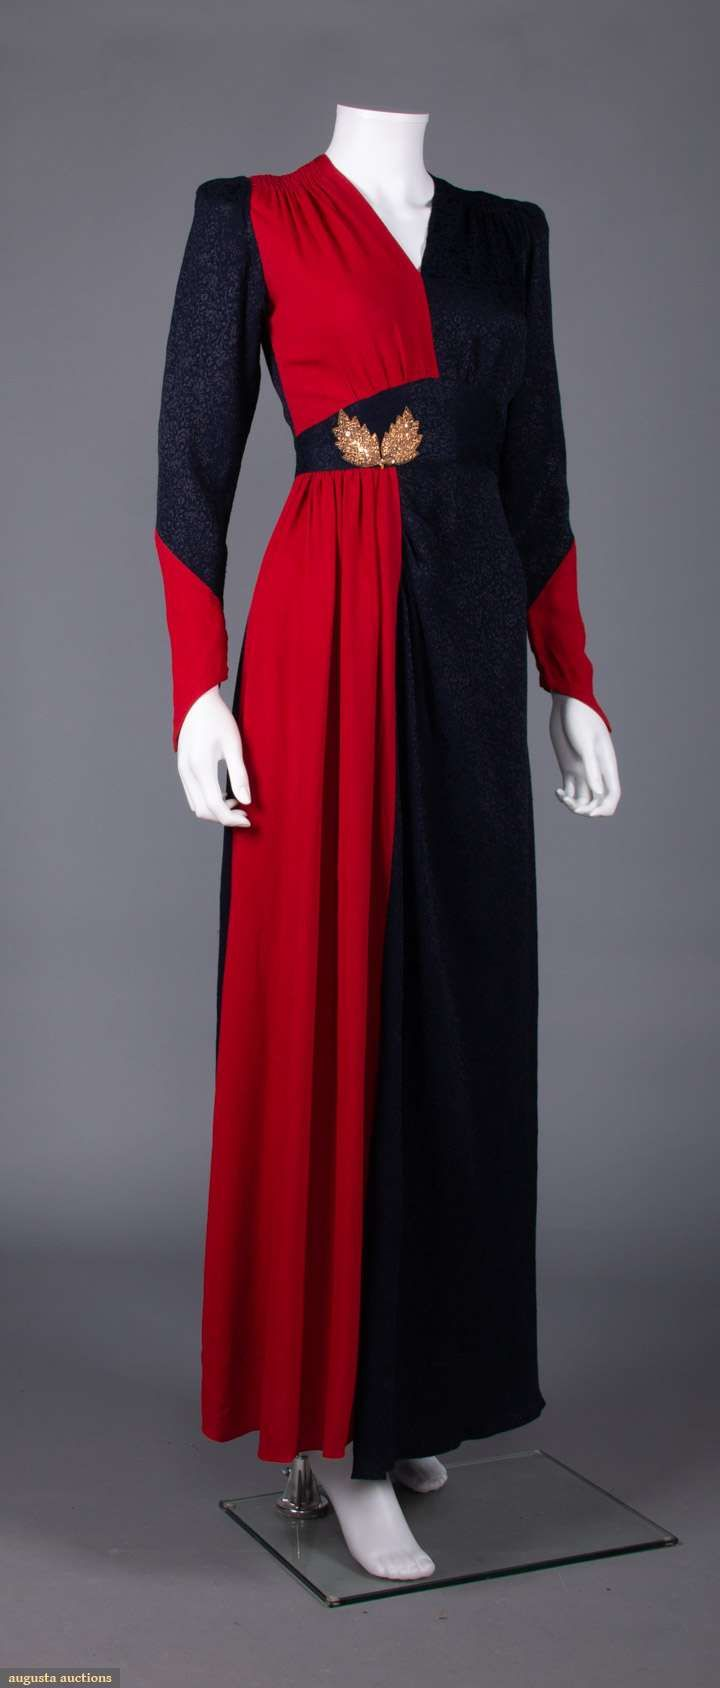 Vintage 1940s Color Block Swag Dress: 1940s Navy & Red Color Block Rayon, Inset W Band W/ Gold